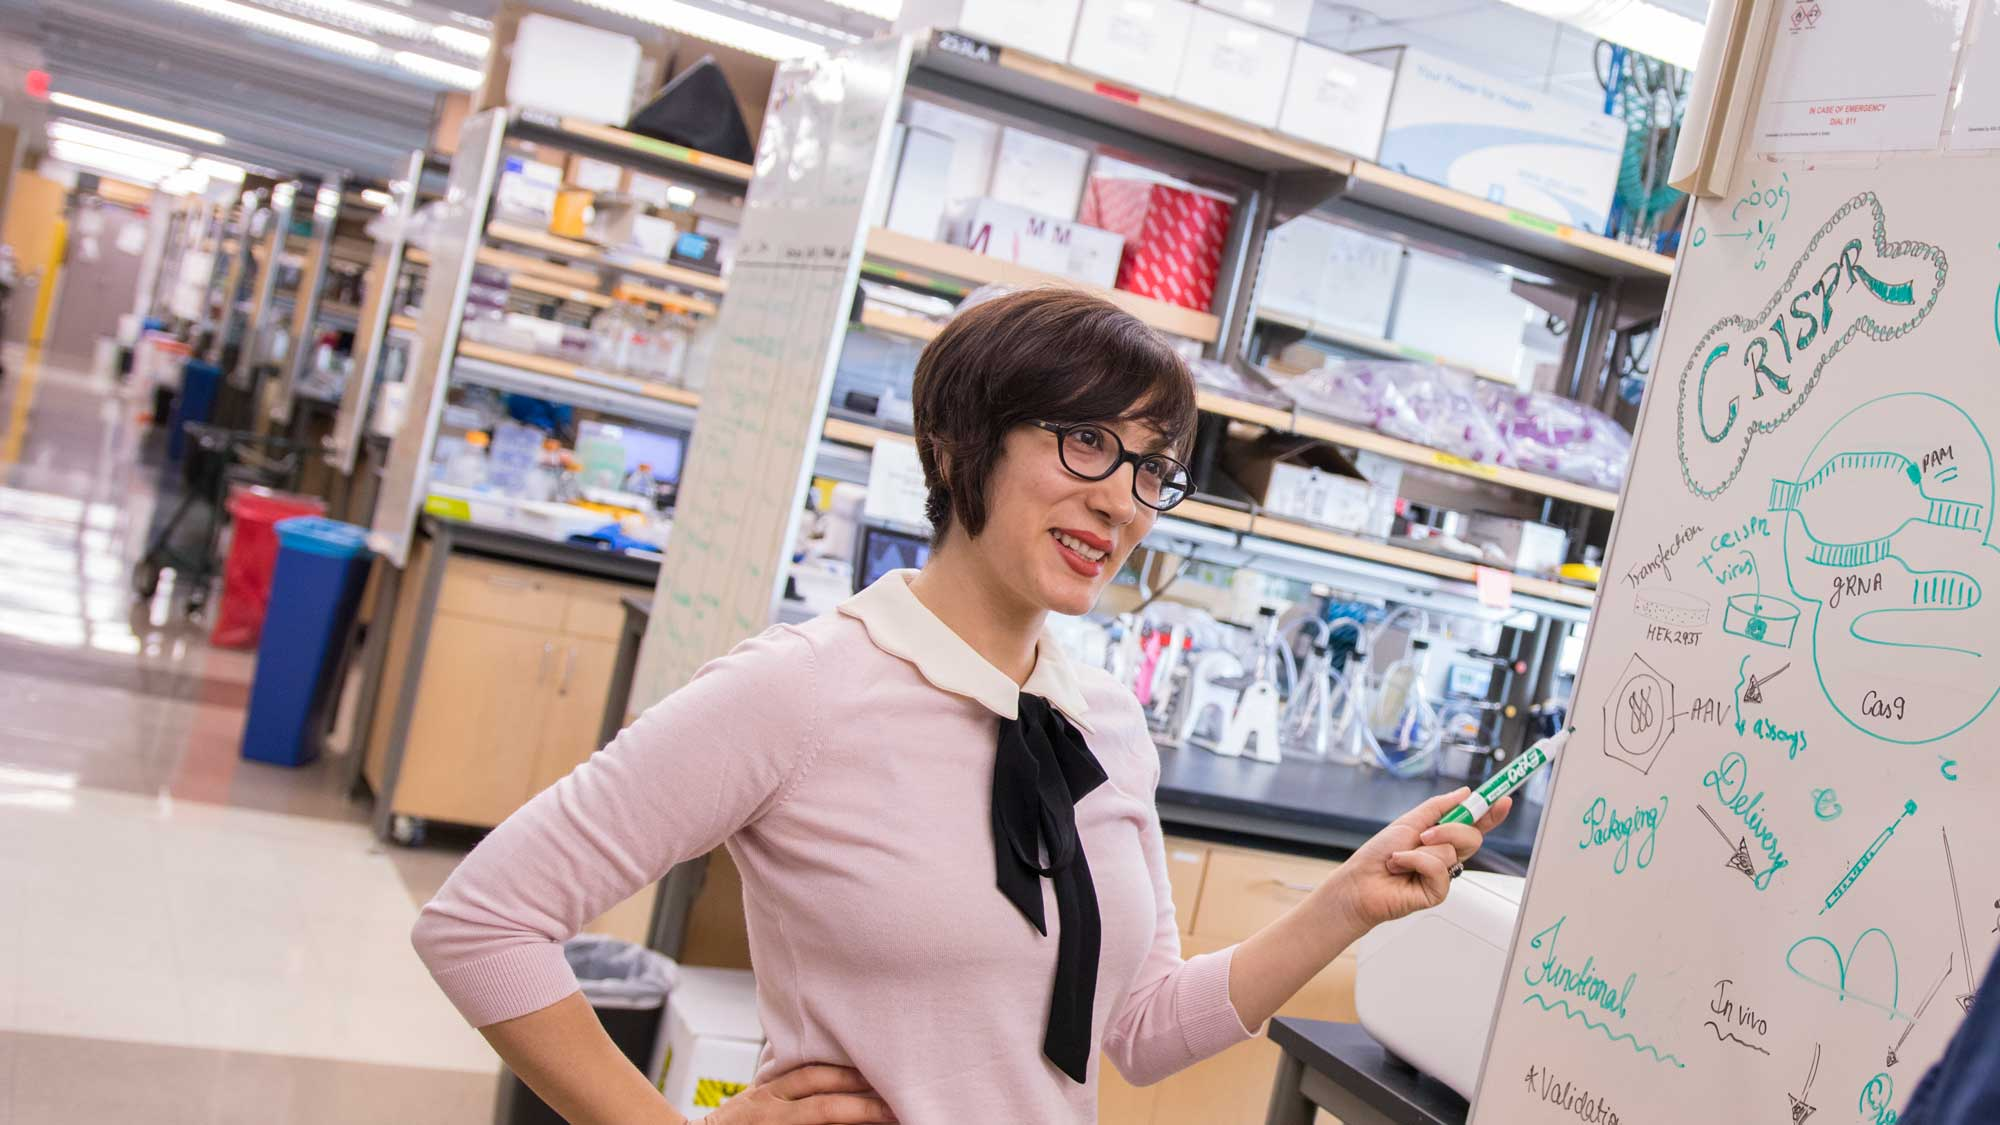 Samira Kiani stands in her lab discussing something on the white board with a colleague